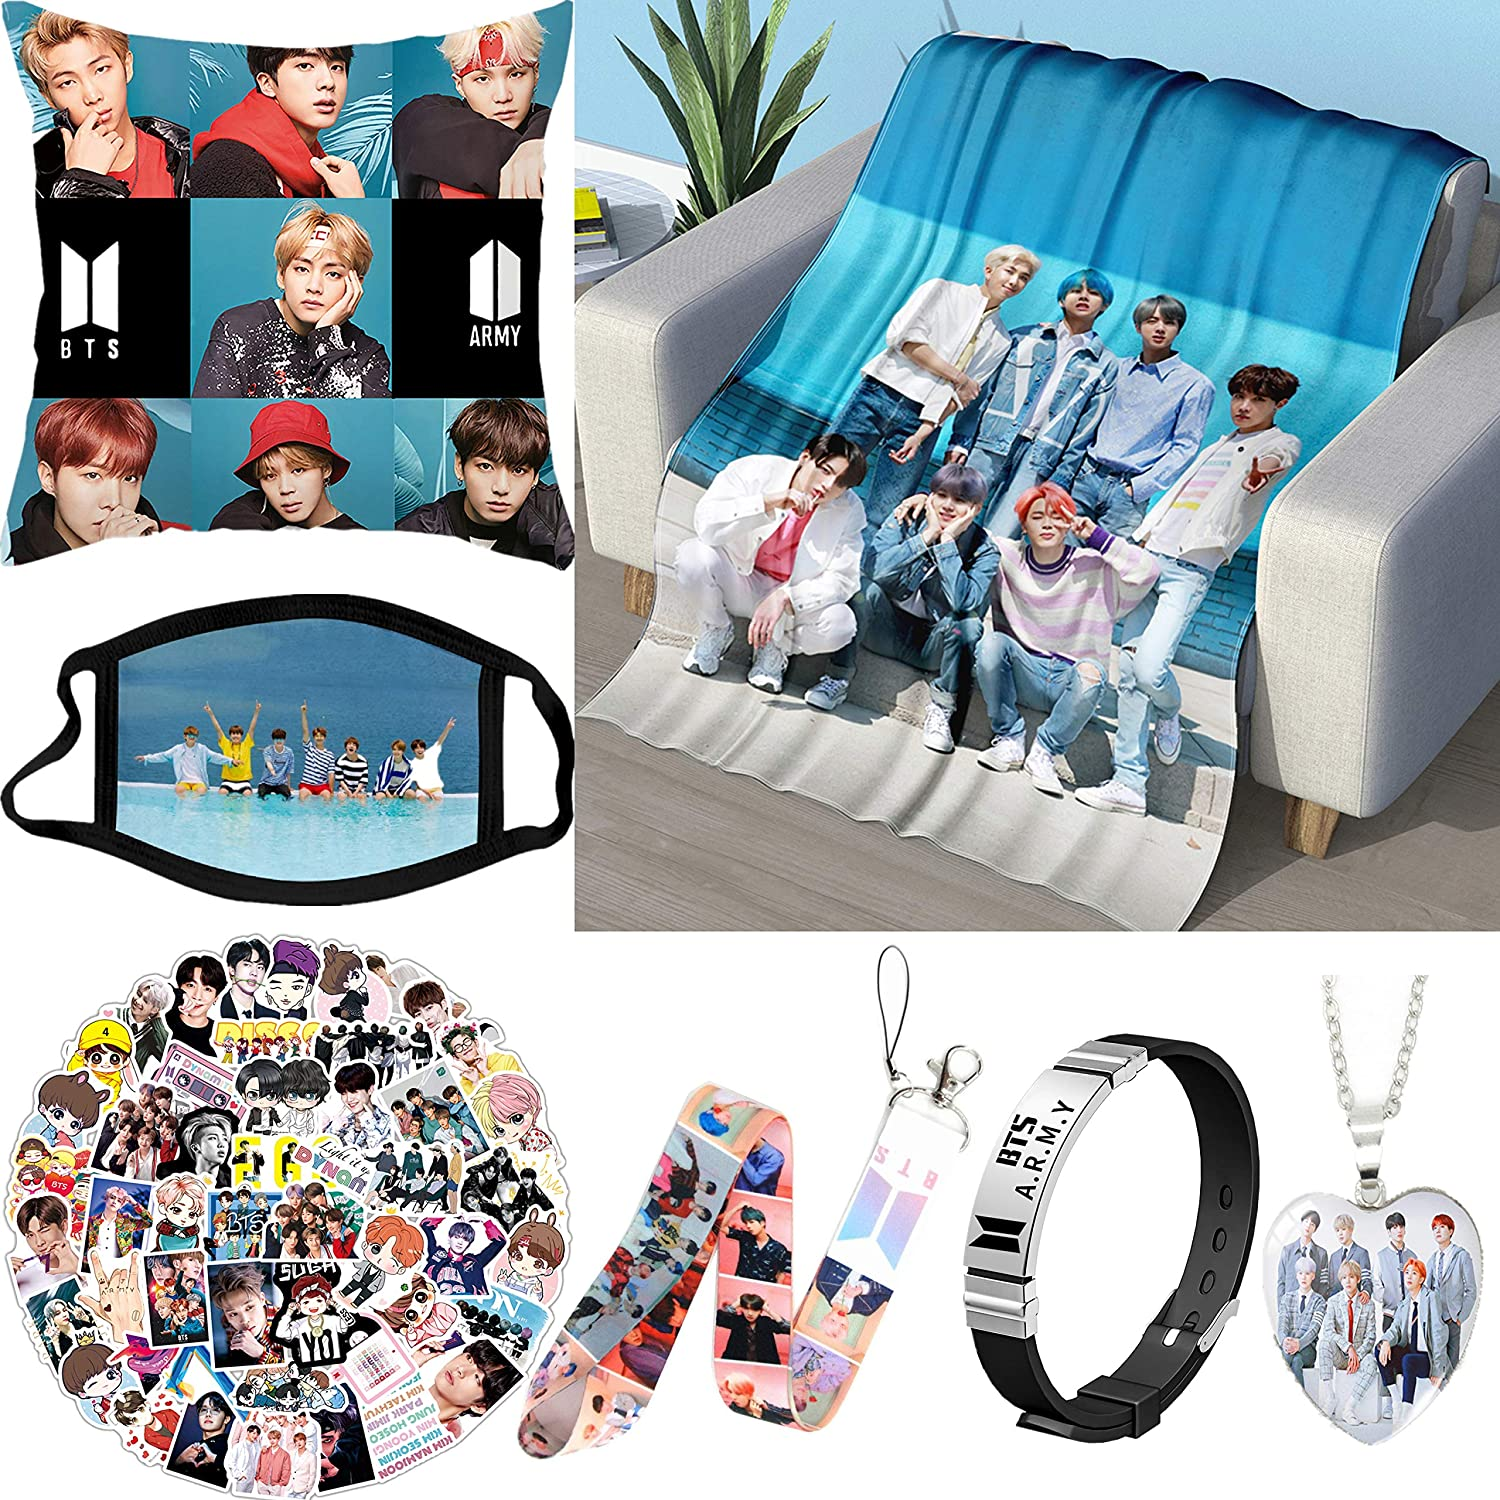 BTS Popularity Flannel High quality Blanket Gift Set 40 Including x 60